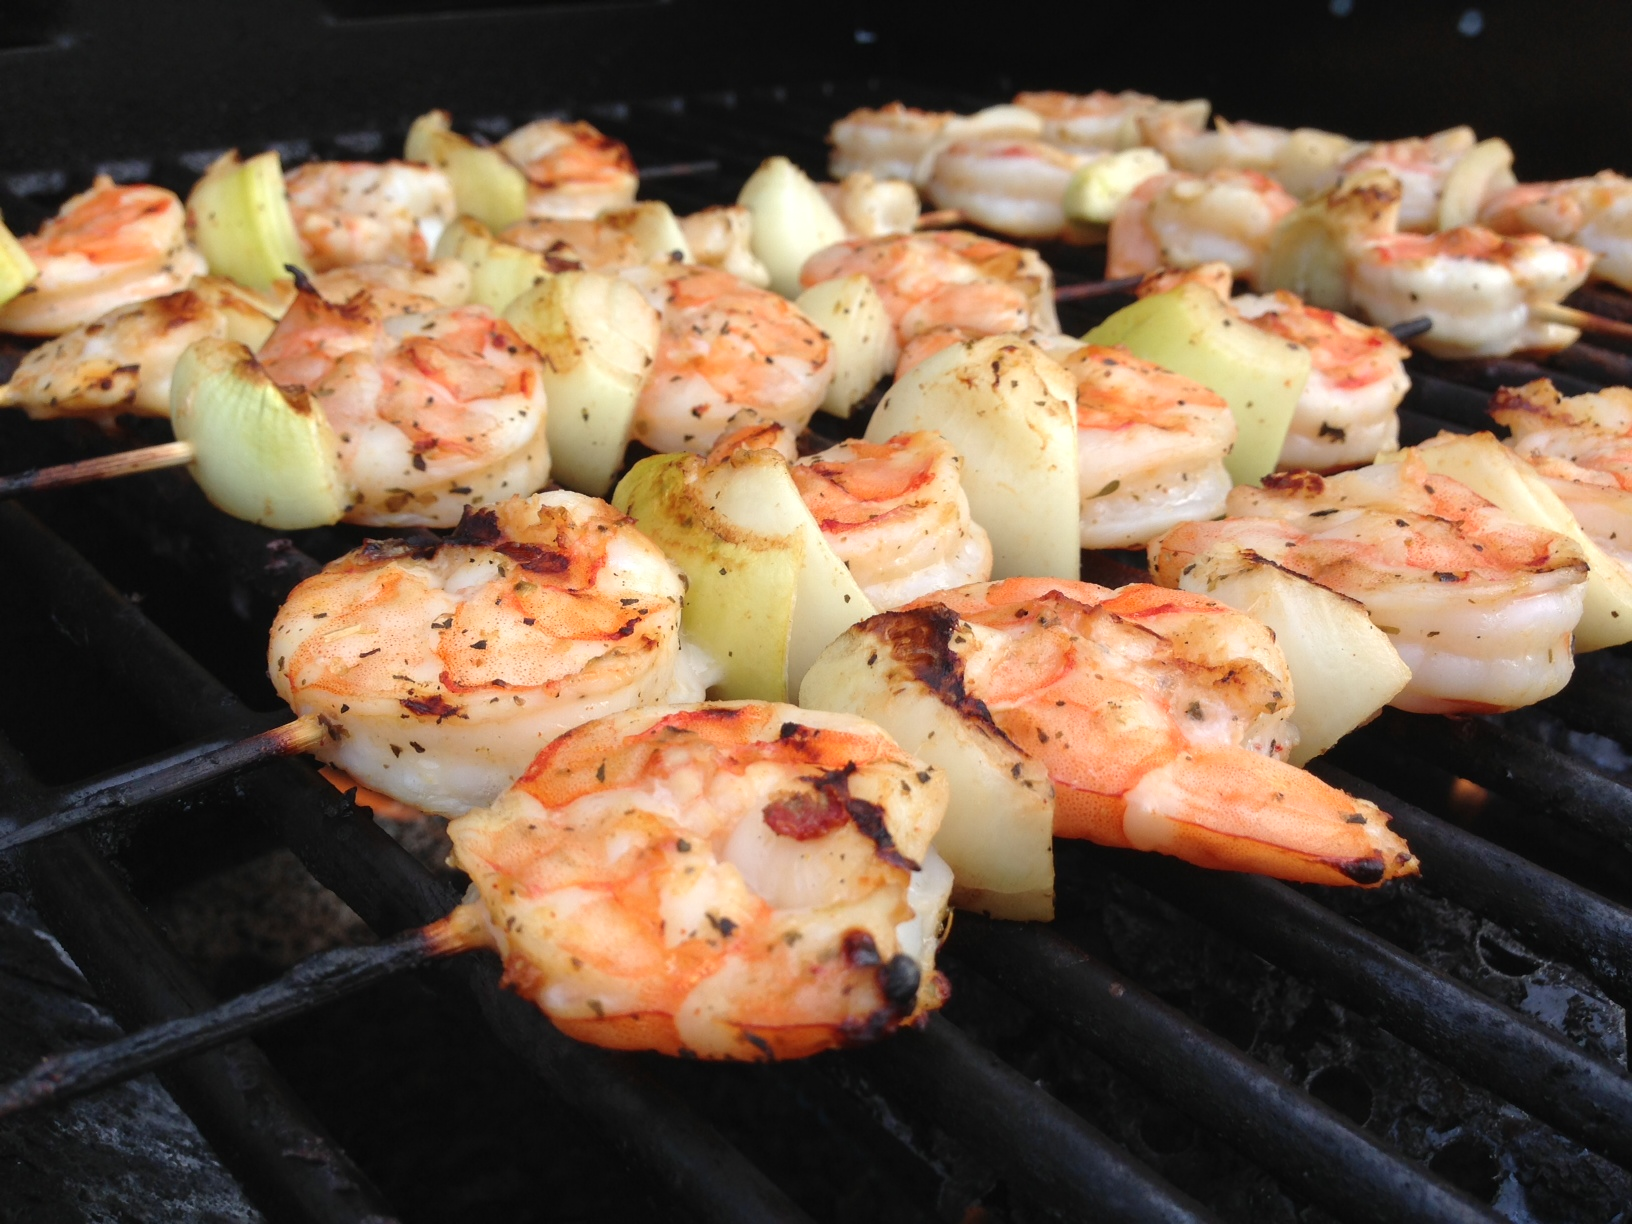 Shrimp on the grill makes this Fathers Day a great one!